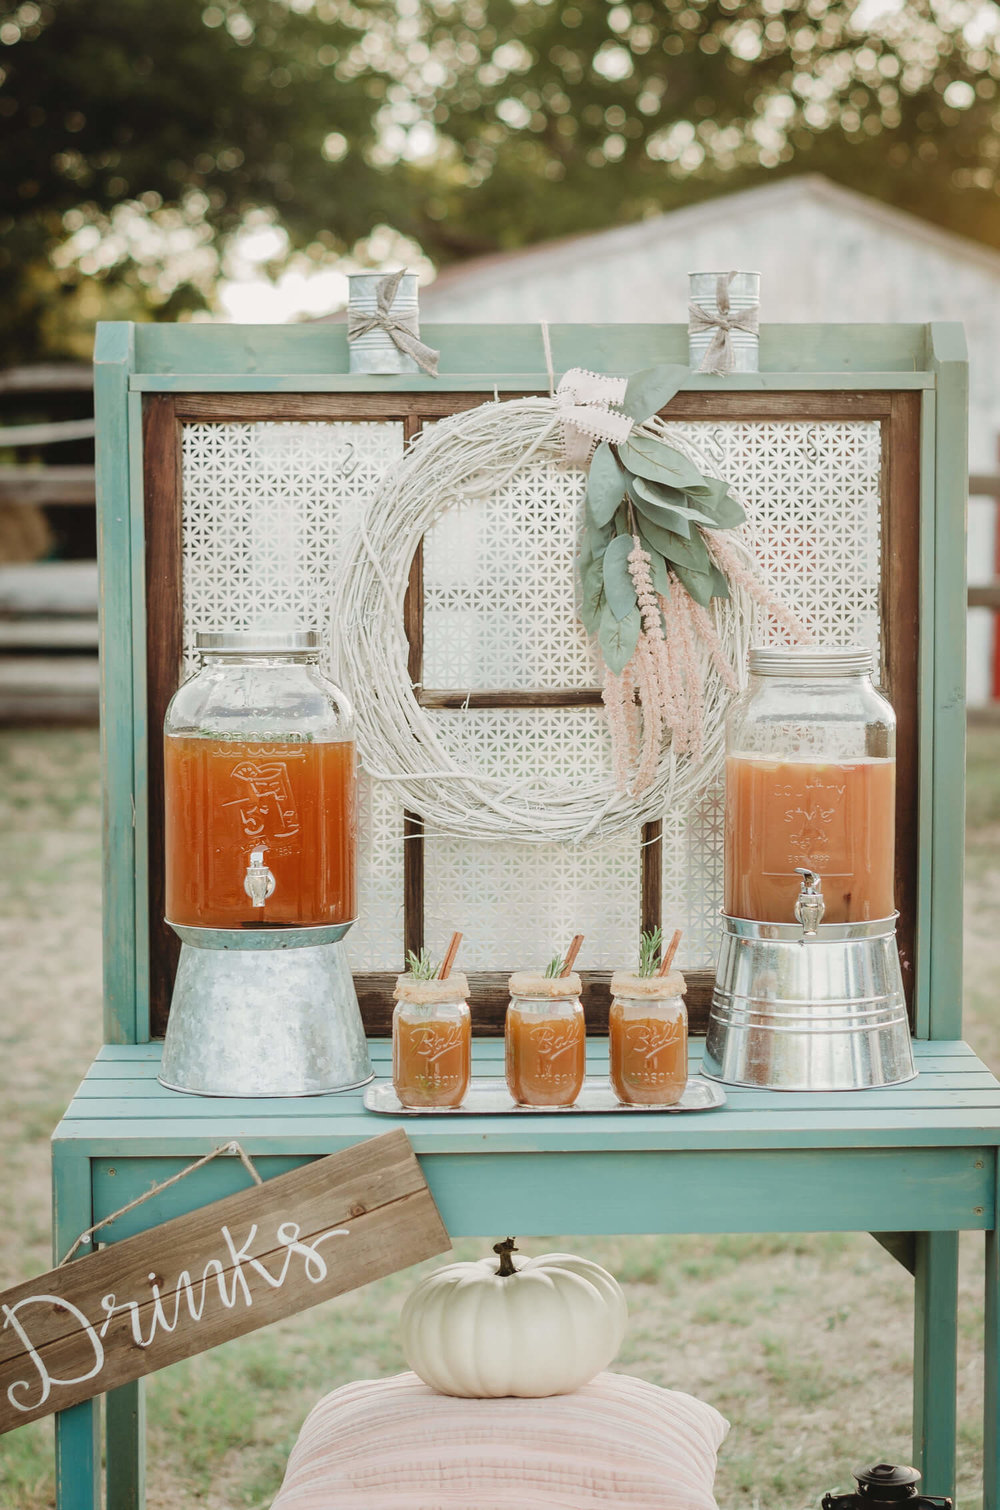 A gardeners tool table is the perfect choice for a rustic bridal shower drink station - especially when held on a farm. Click to see even more details of this fall bridal shower by party stylist Mint Event Design. #bridalshowers #bridalshowerideas #rusticwedding #rusticbridalshower #bridalshowerdecor #farmwedding #drinkstation #drinkbar